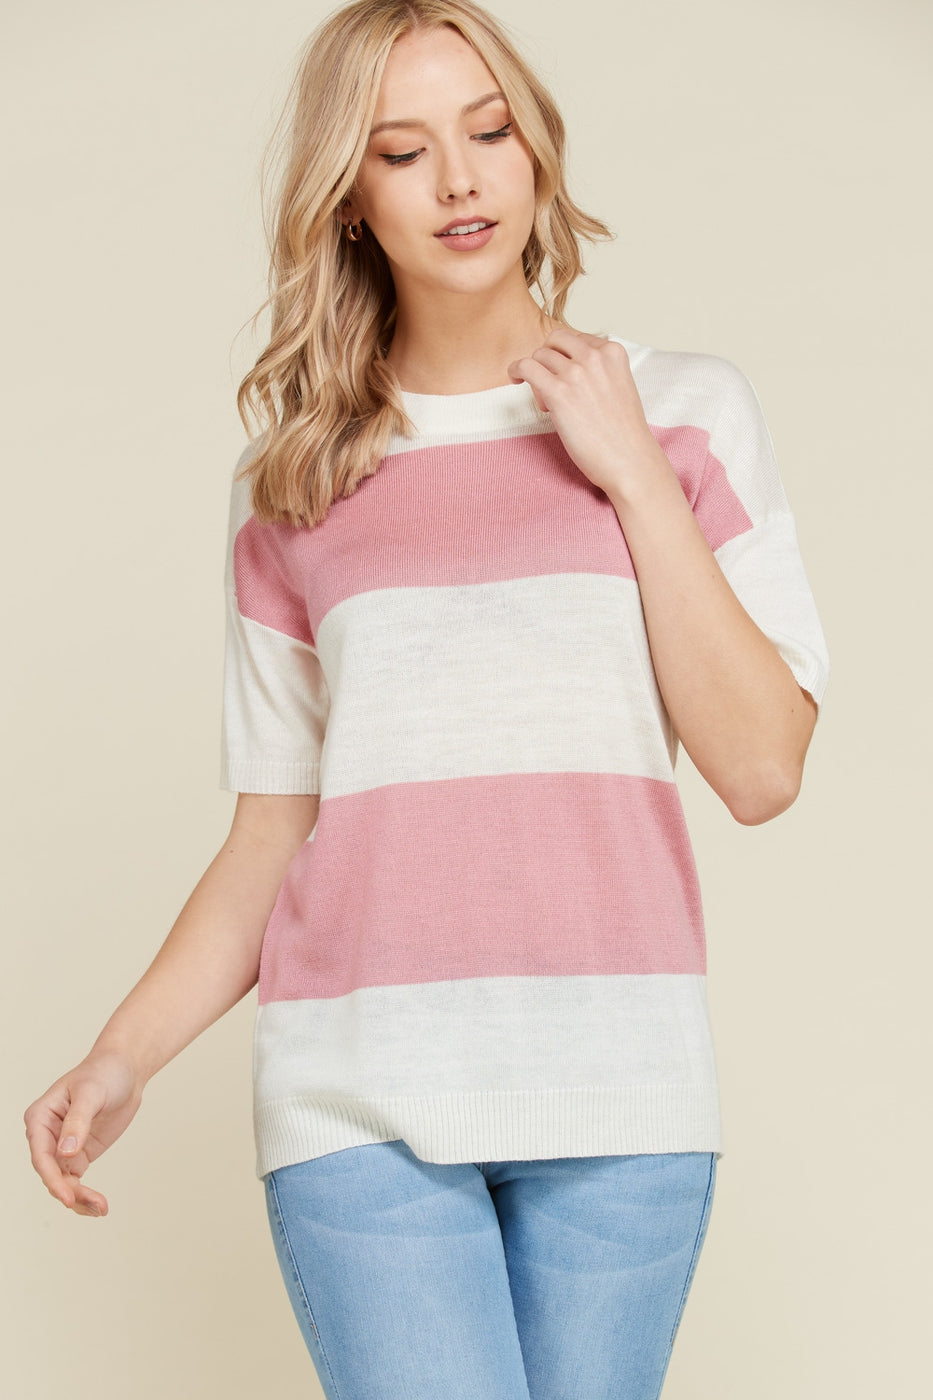 Fun Striped Short Sleeve Sweater Color Block In Pink Siin Bees